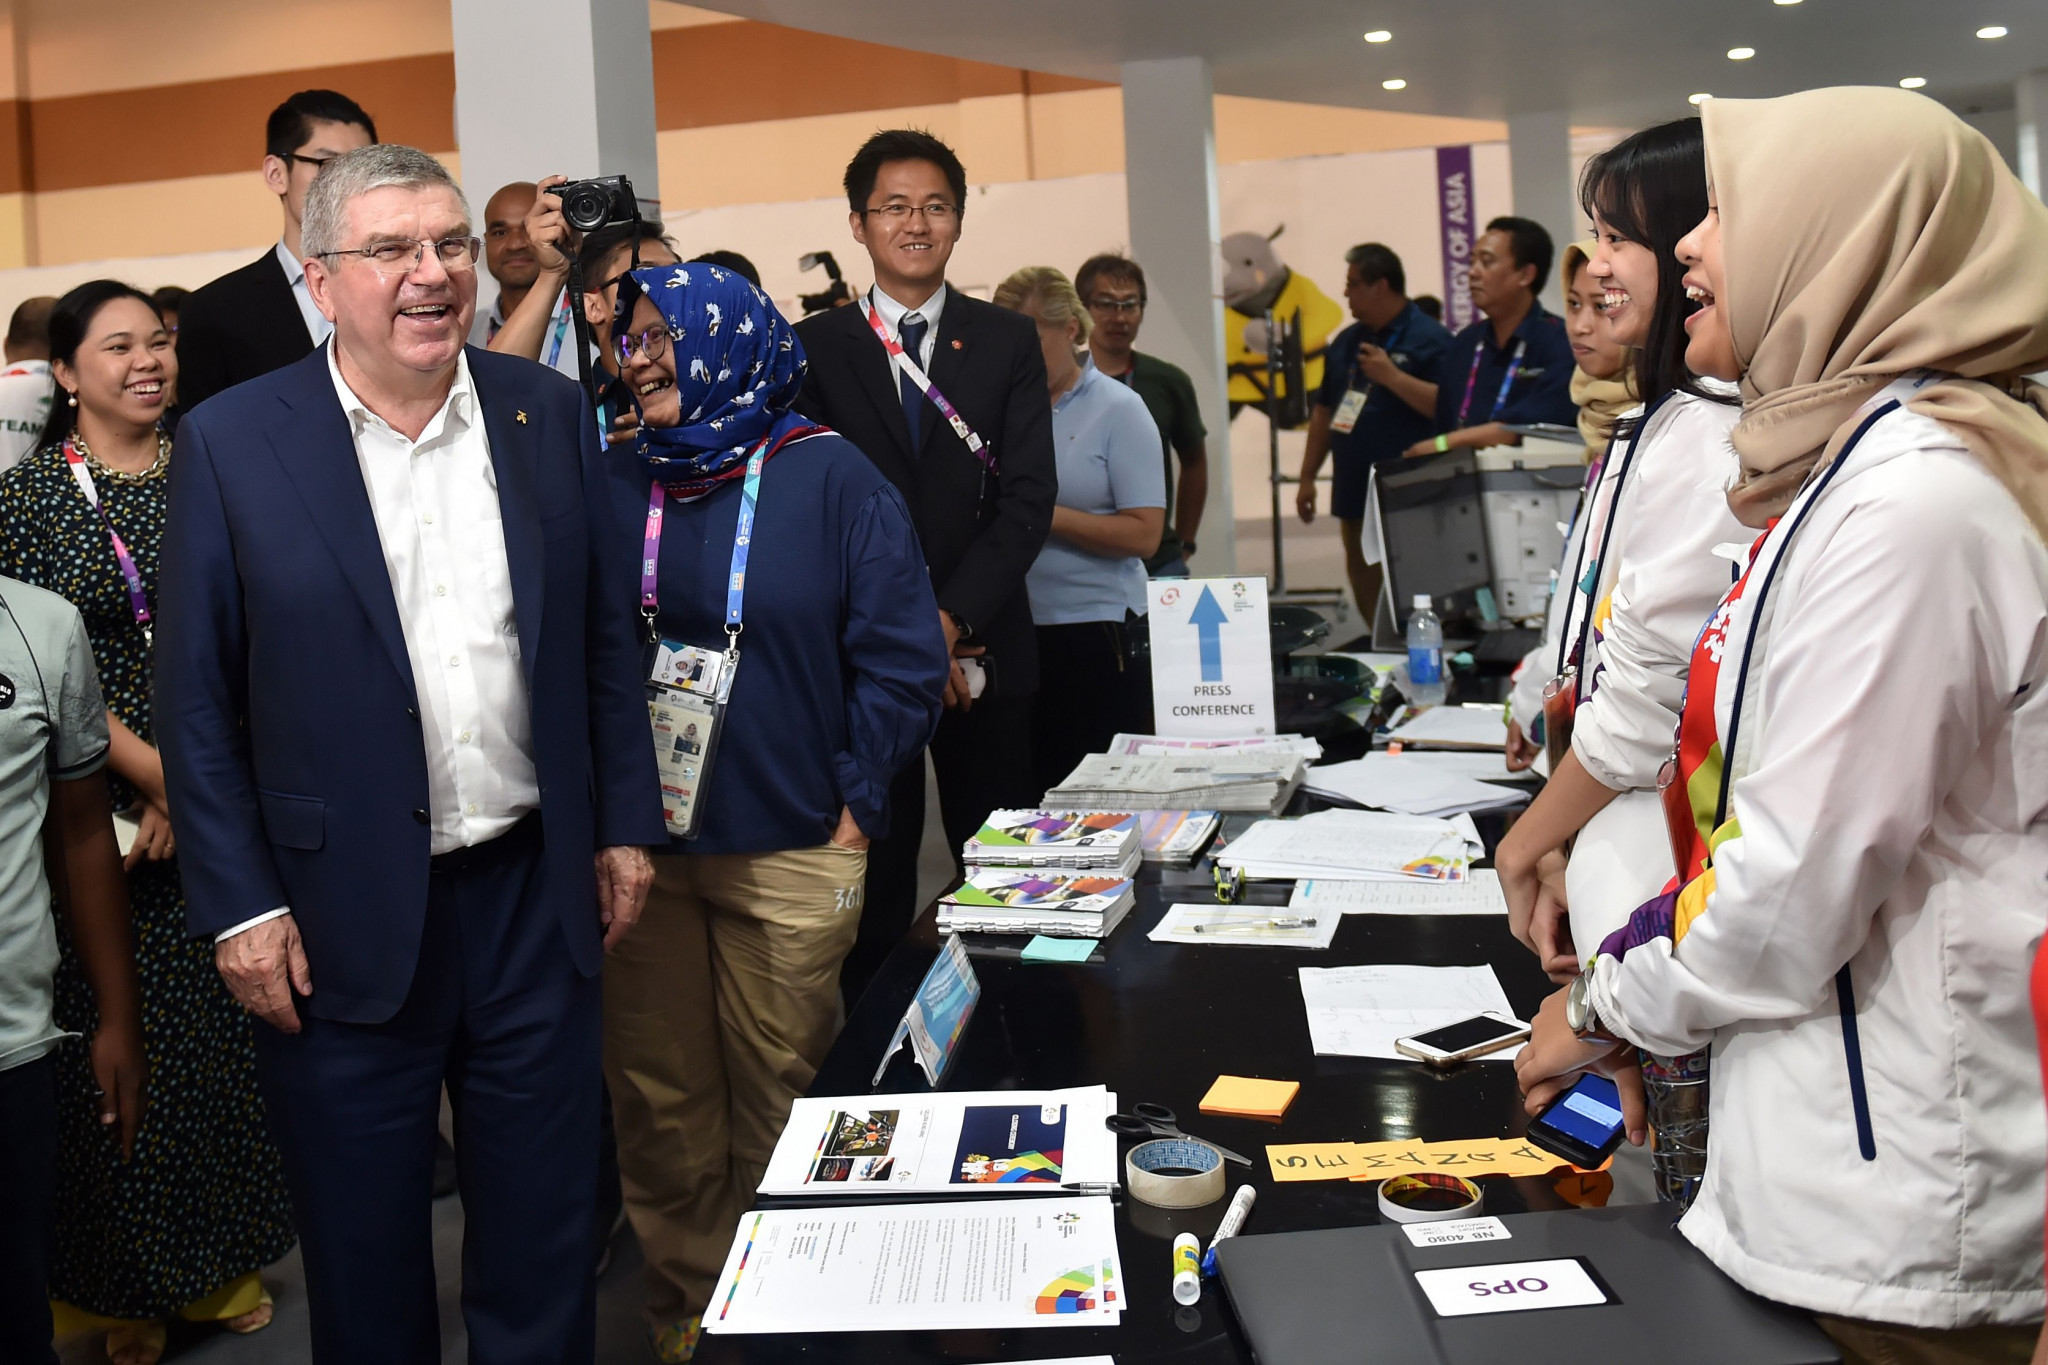 While visiting the 2018 Asian Games IOC President Thomas Bach claimed Indonesia could be a